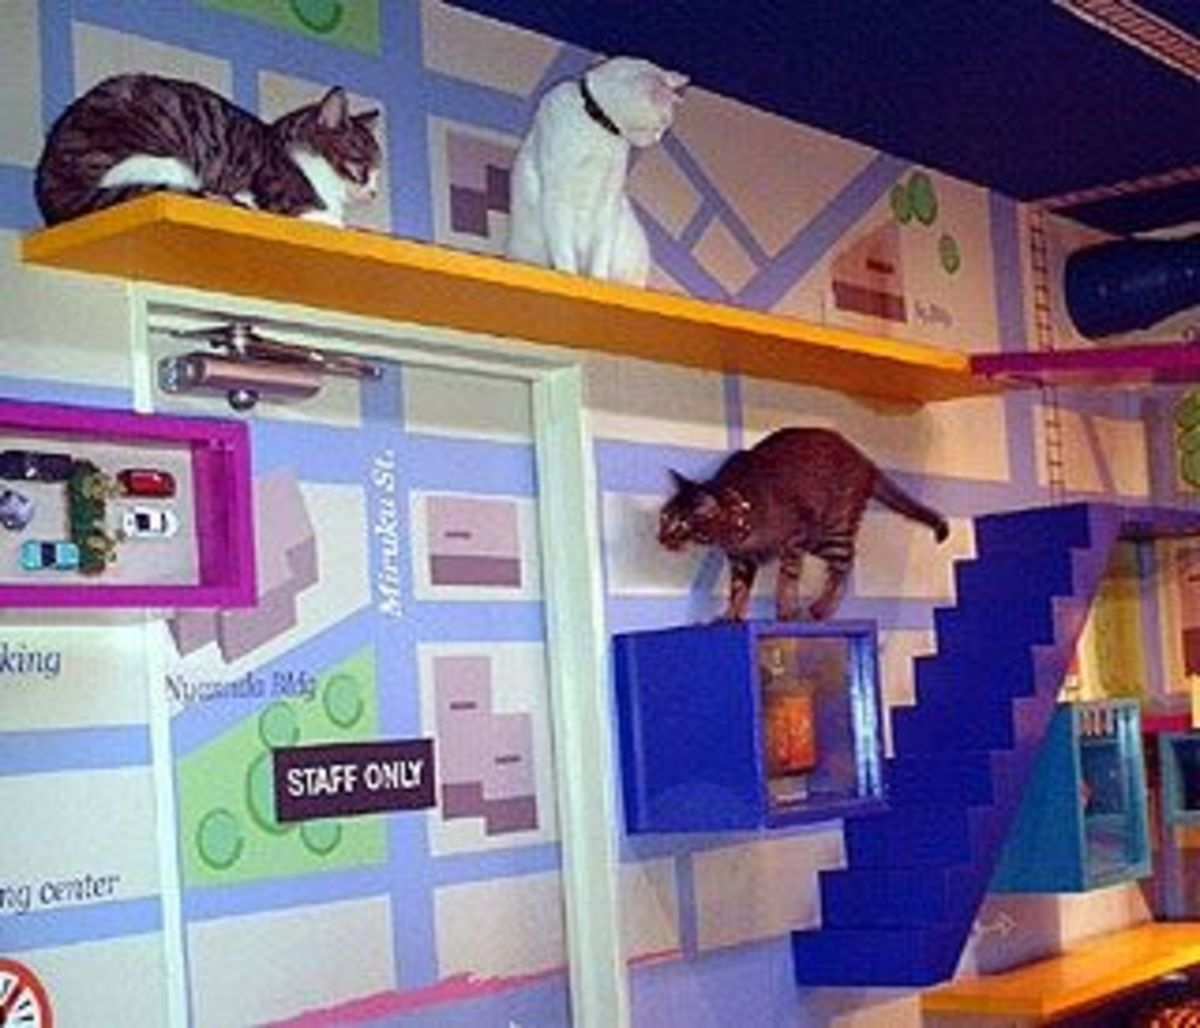 cat room design ideas make your own cat trees towers and other structures pethelpful - Cat Room Design Ideas